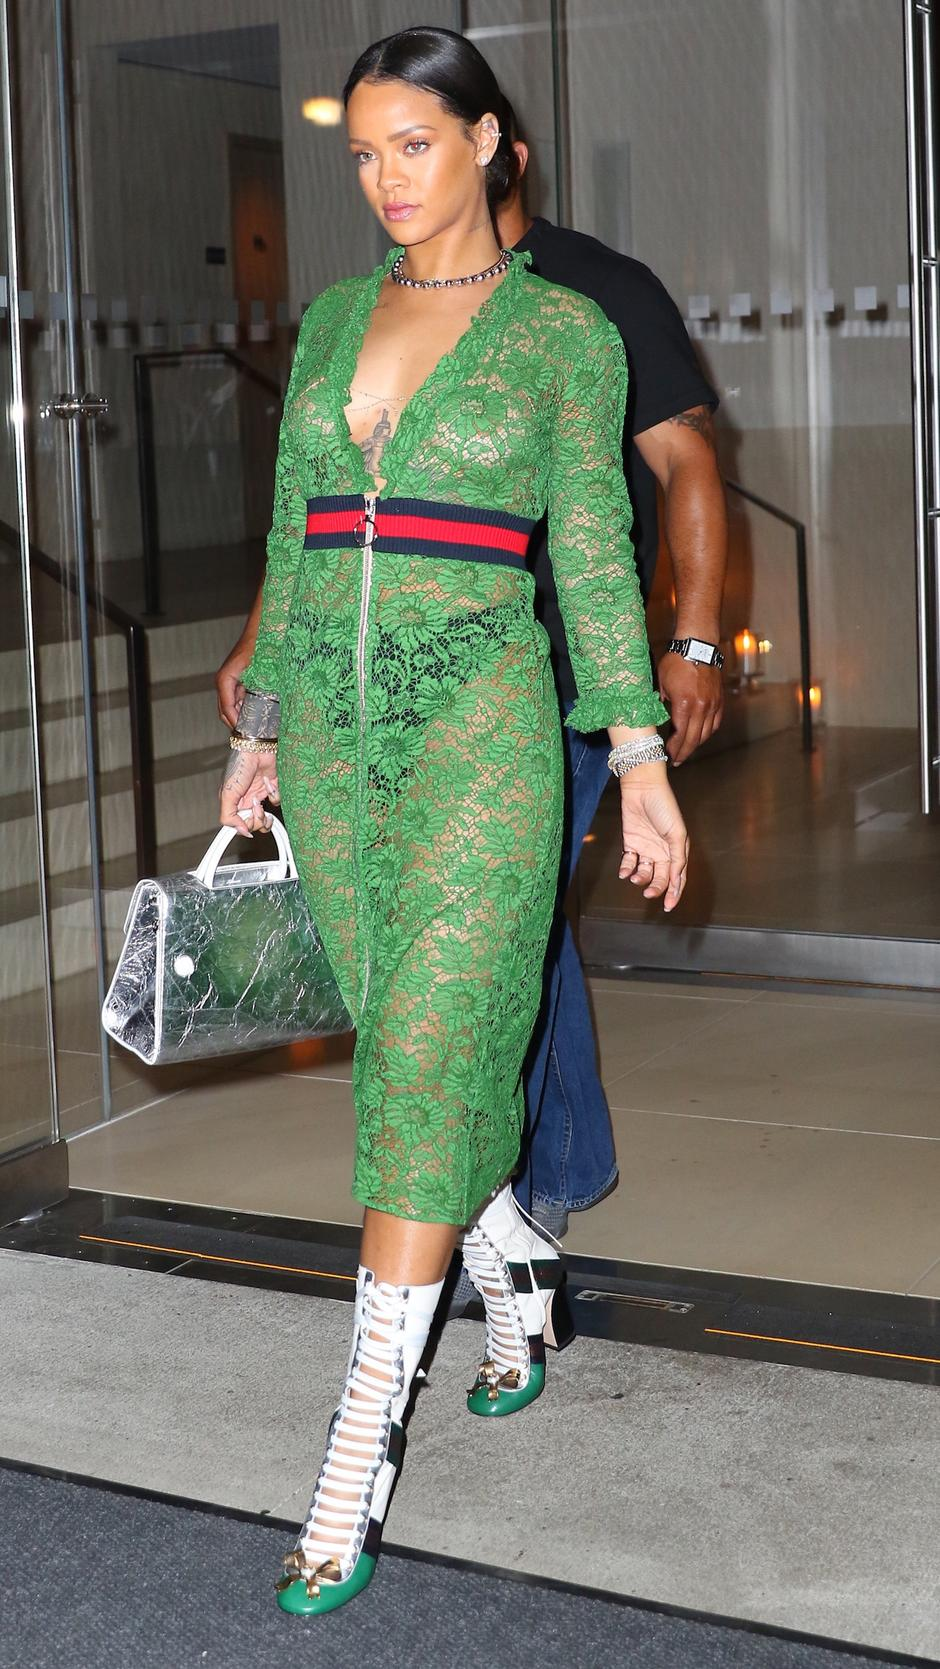 Rihanna is Gucci-down in green lace dress and leather high boots | Autor: MAPE